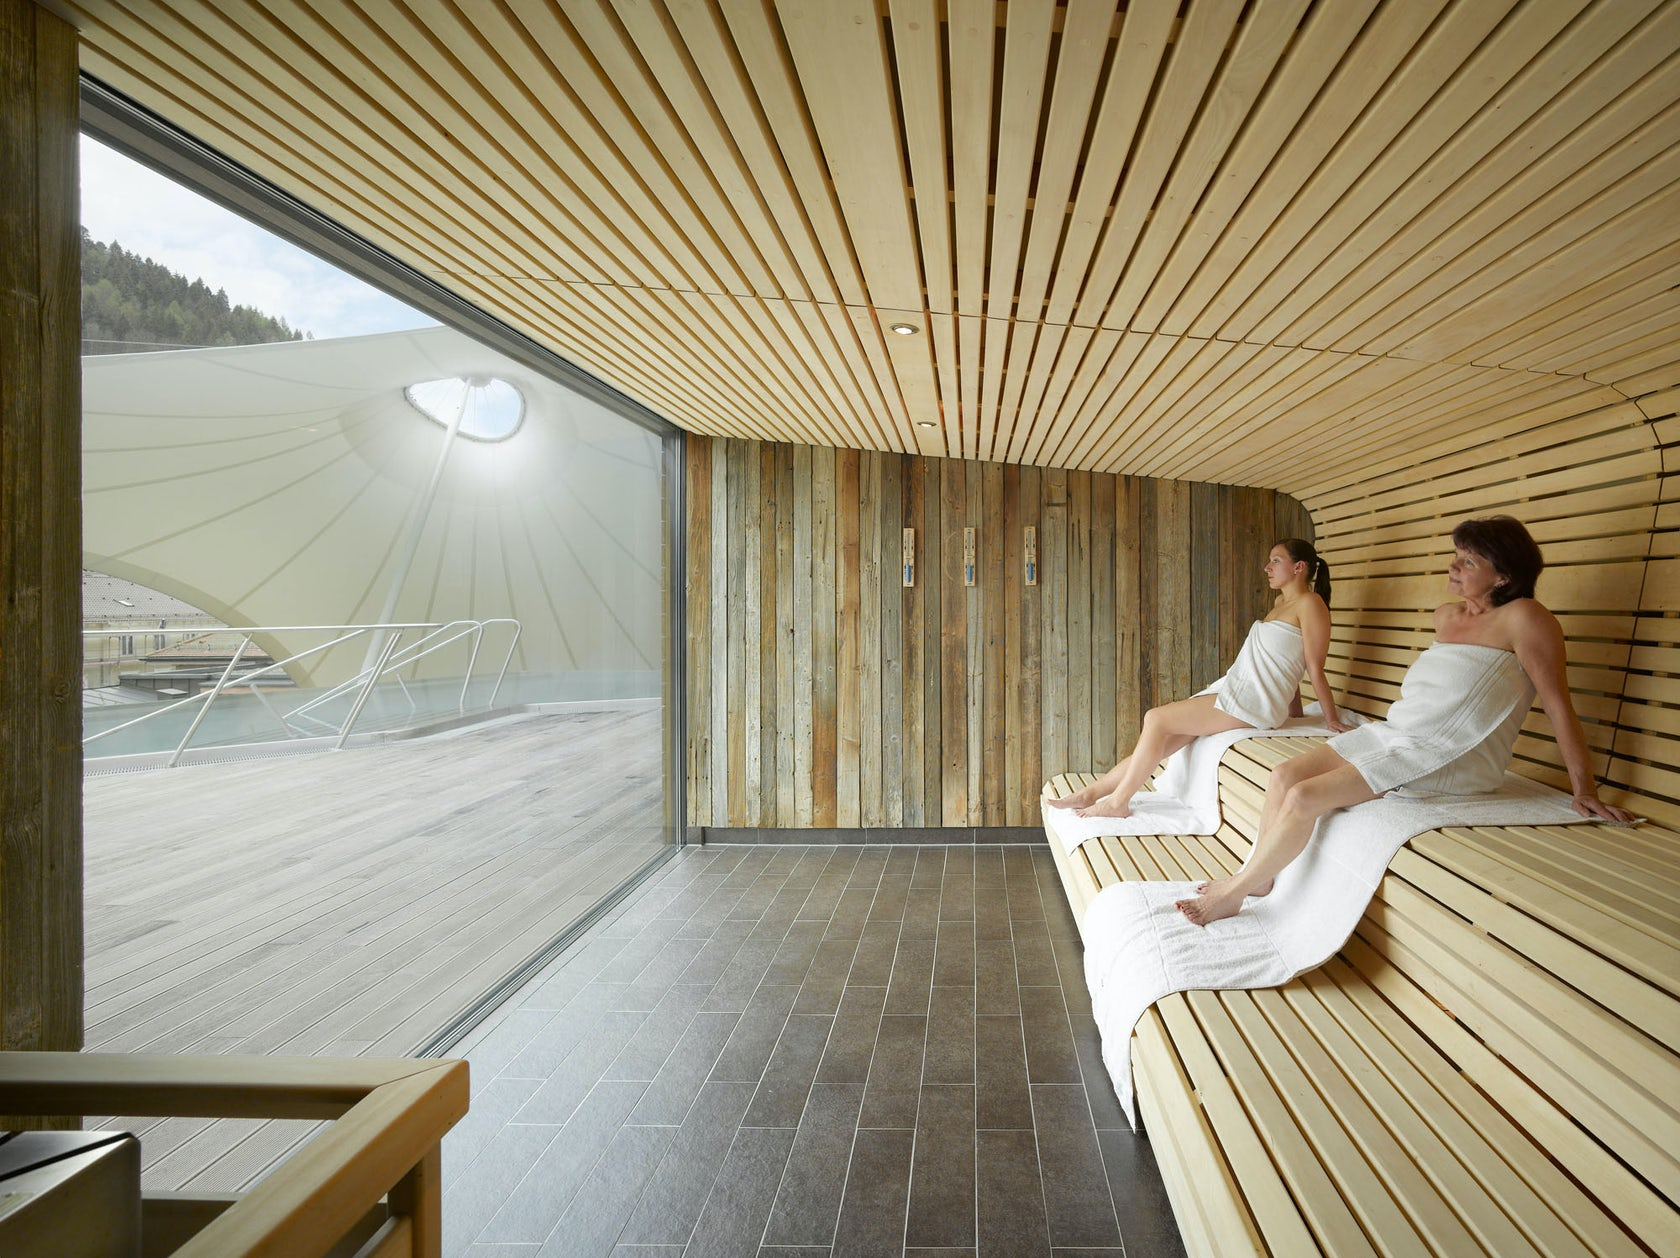 Spa and outdoor area 39 palais thermal 39 architizer for Design wellness hotel